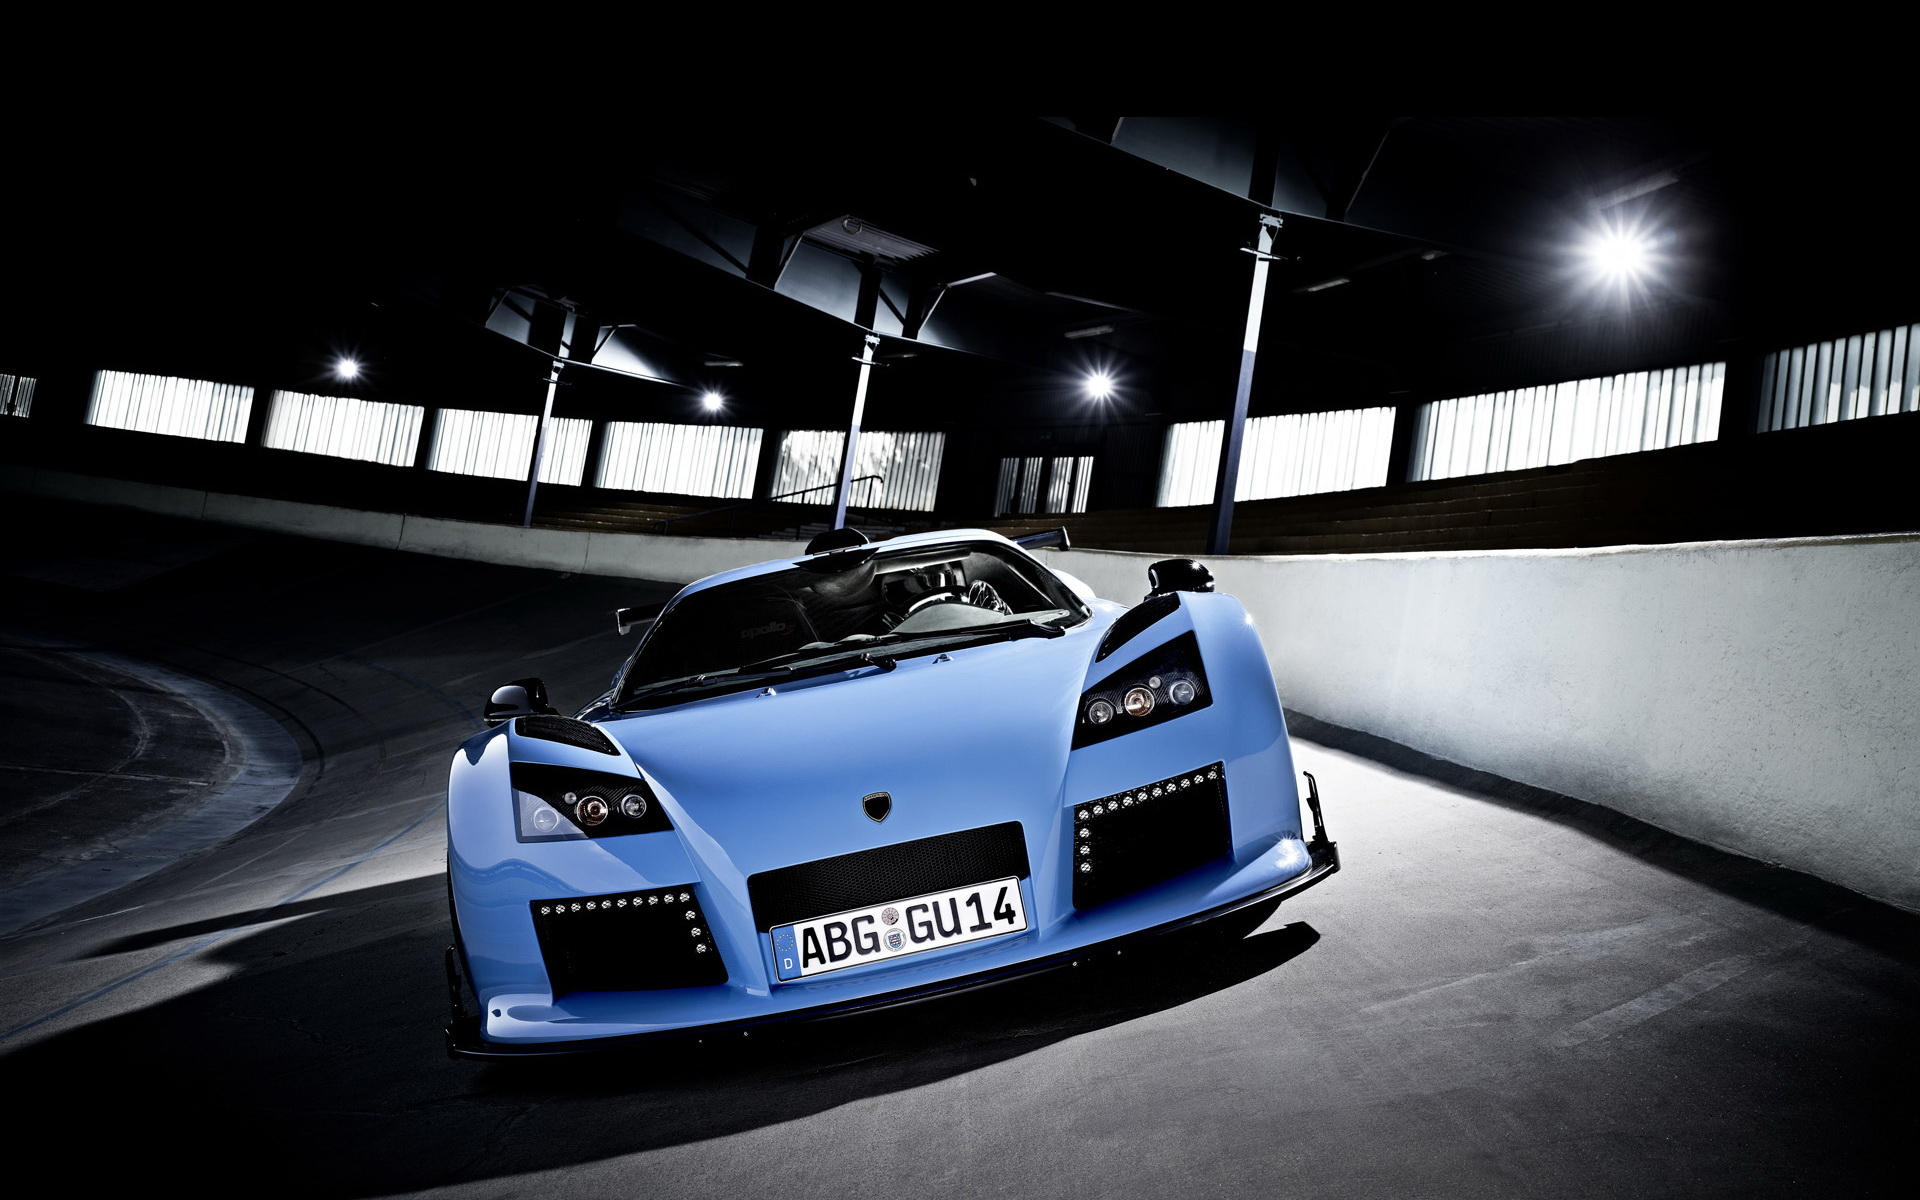 Wallpaper Mobil Sport Mewah: 50 Super Sports Car Wallpapers That'll Blow Your Desktop Away